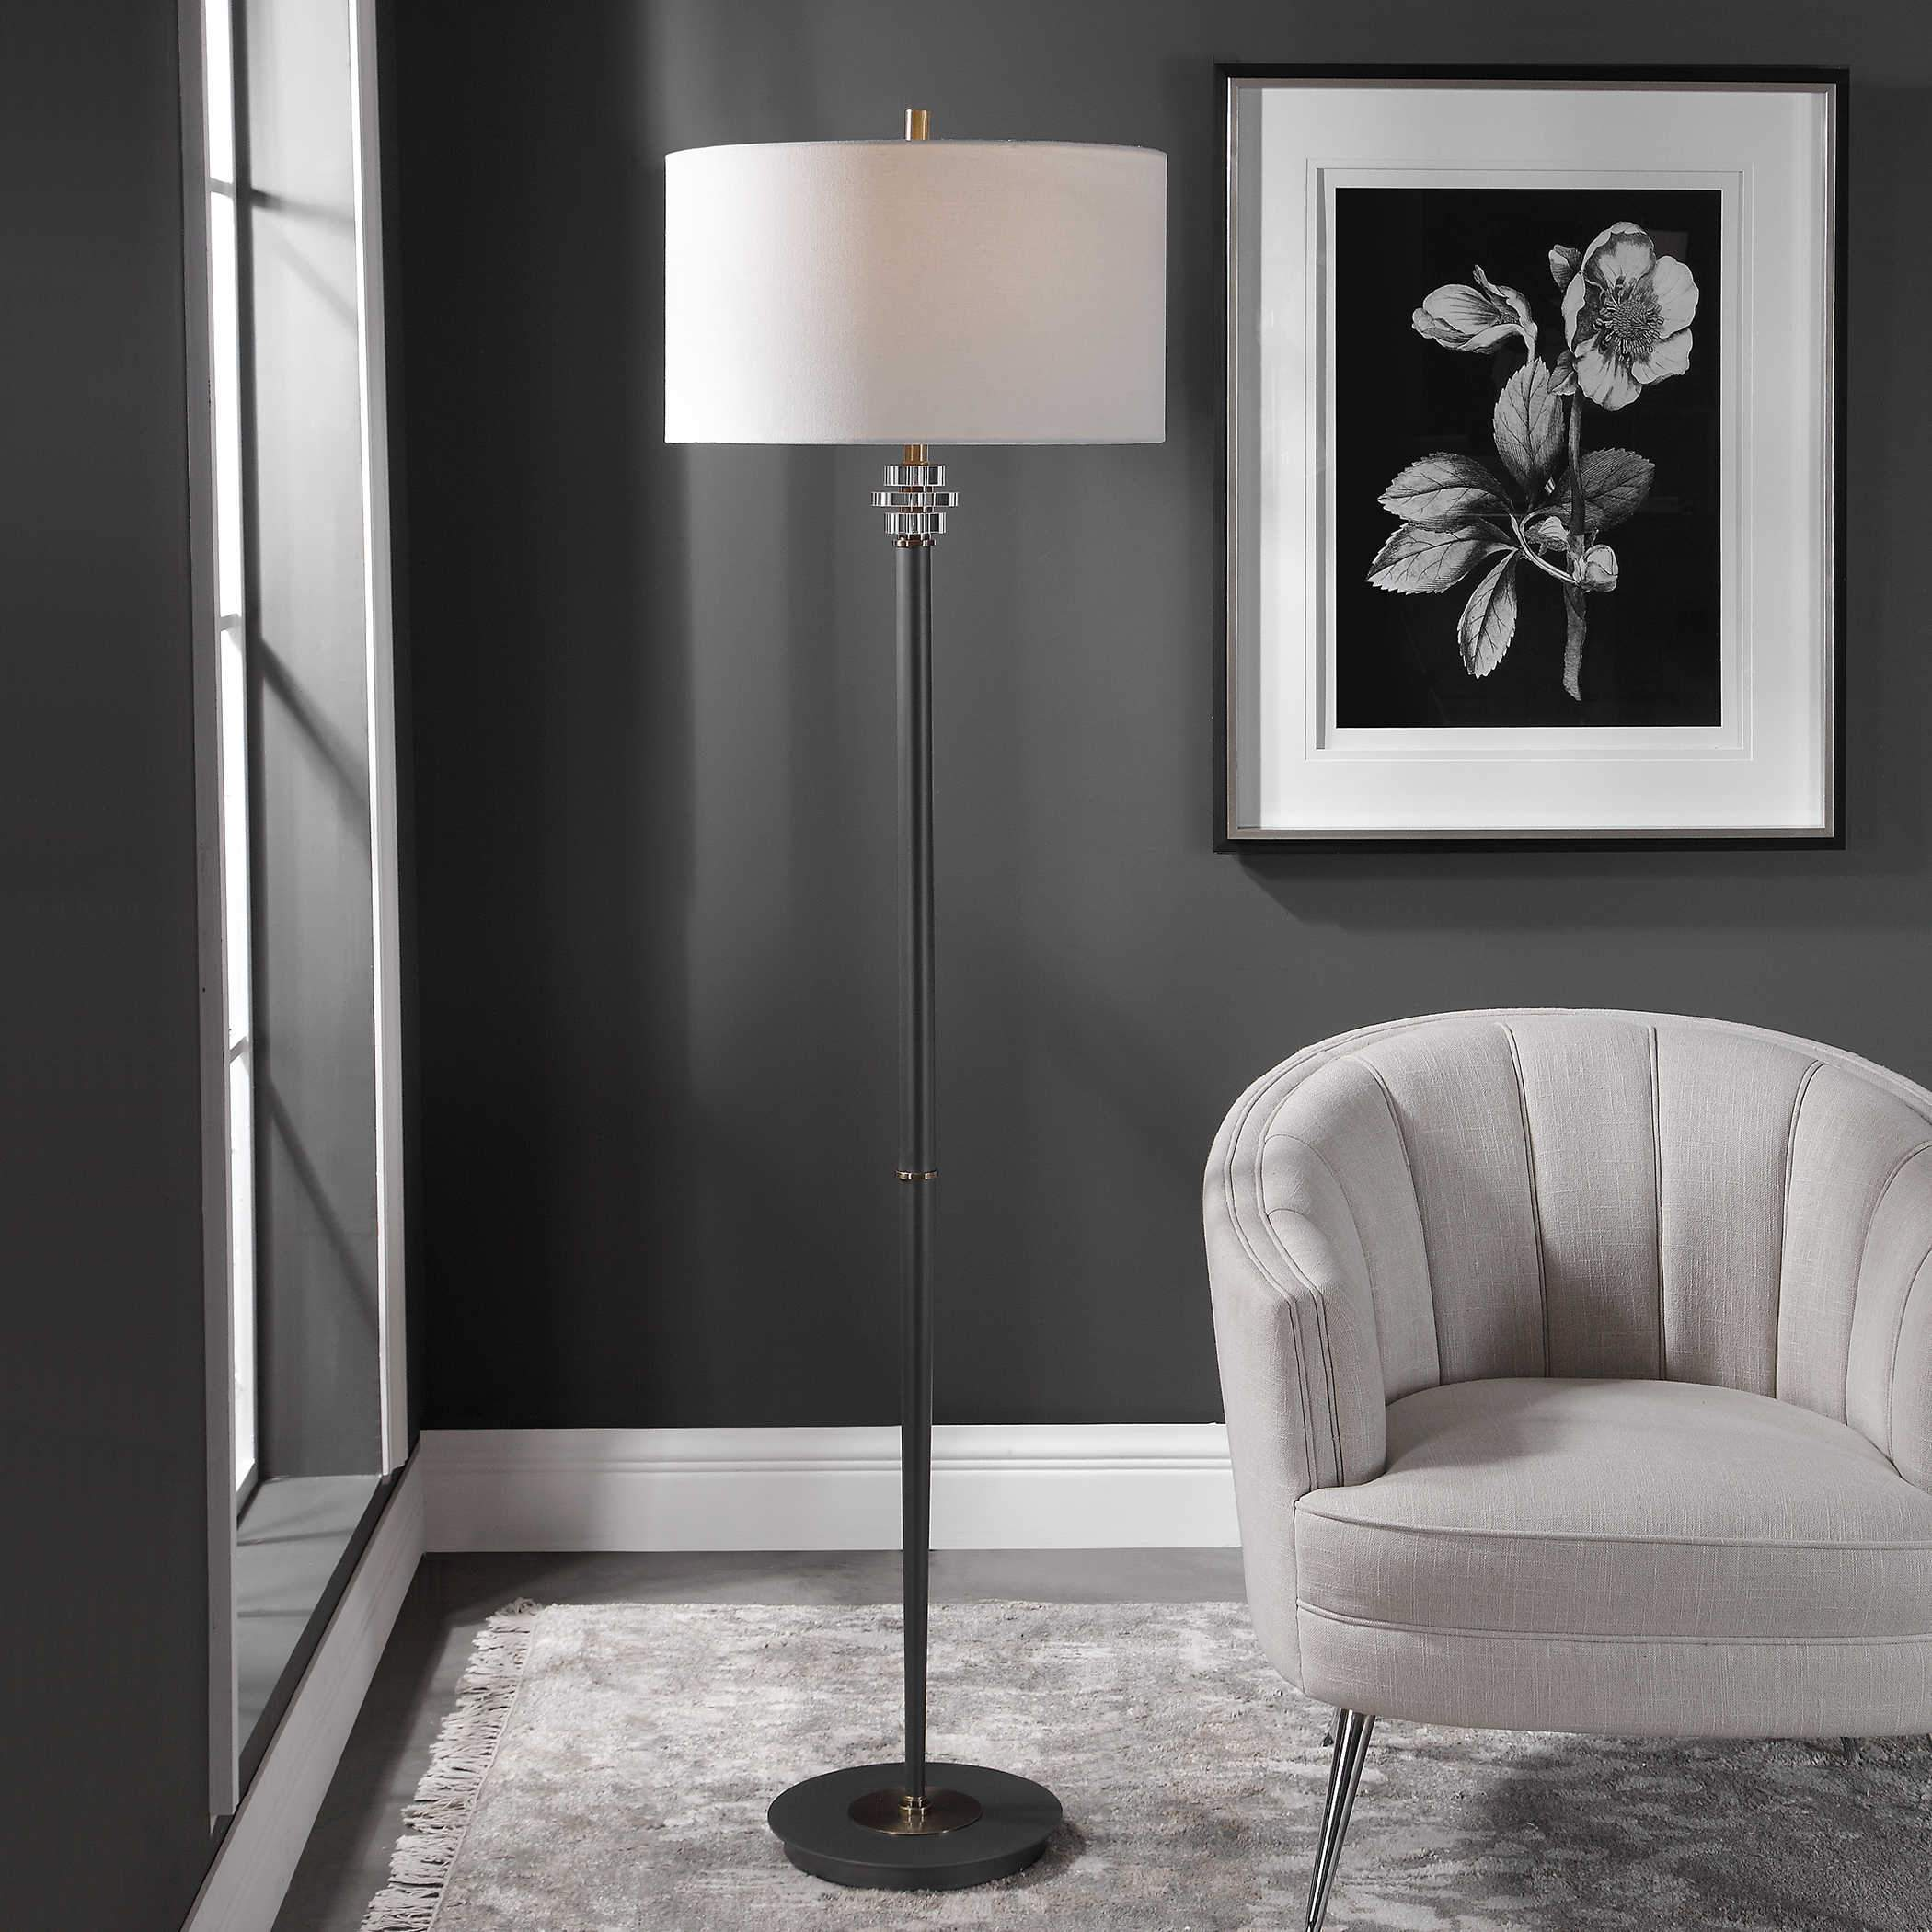 Uttermost Magen Floor Lamp; AVAIL: APR 21, 2021